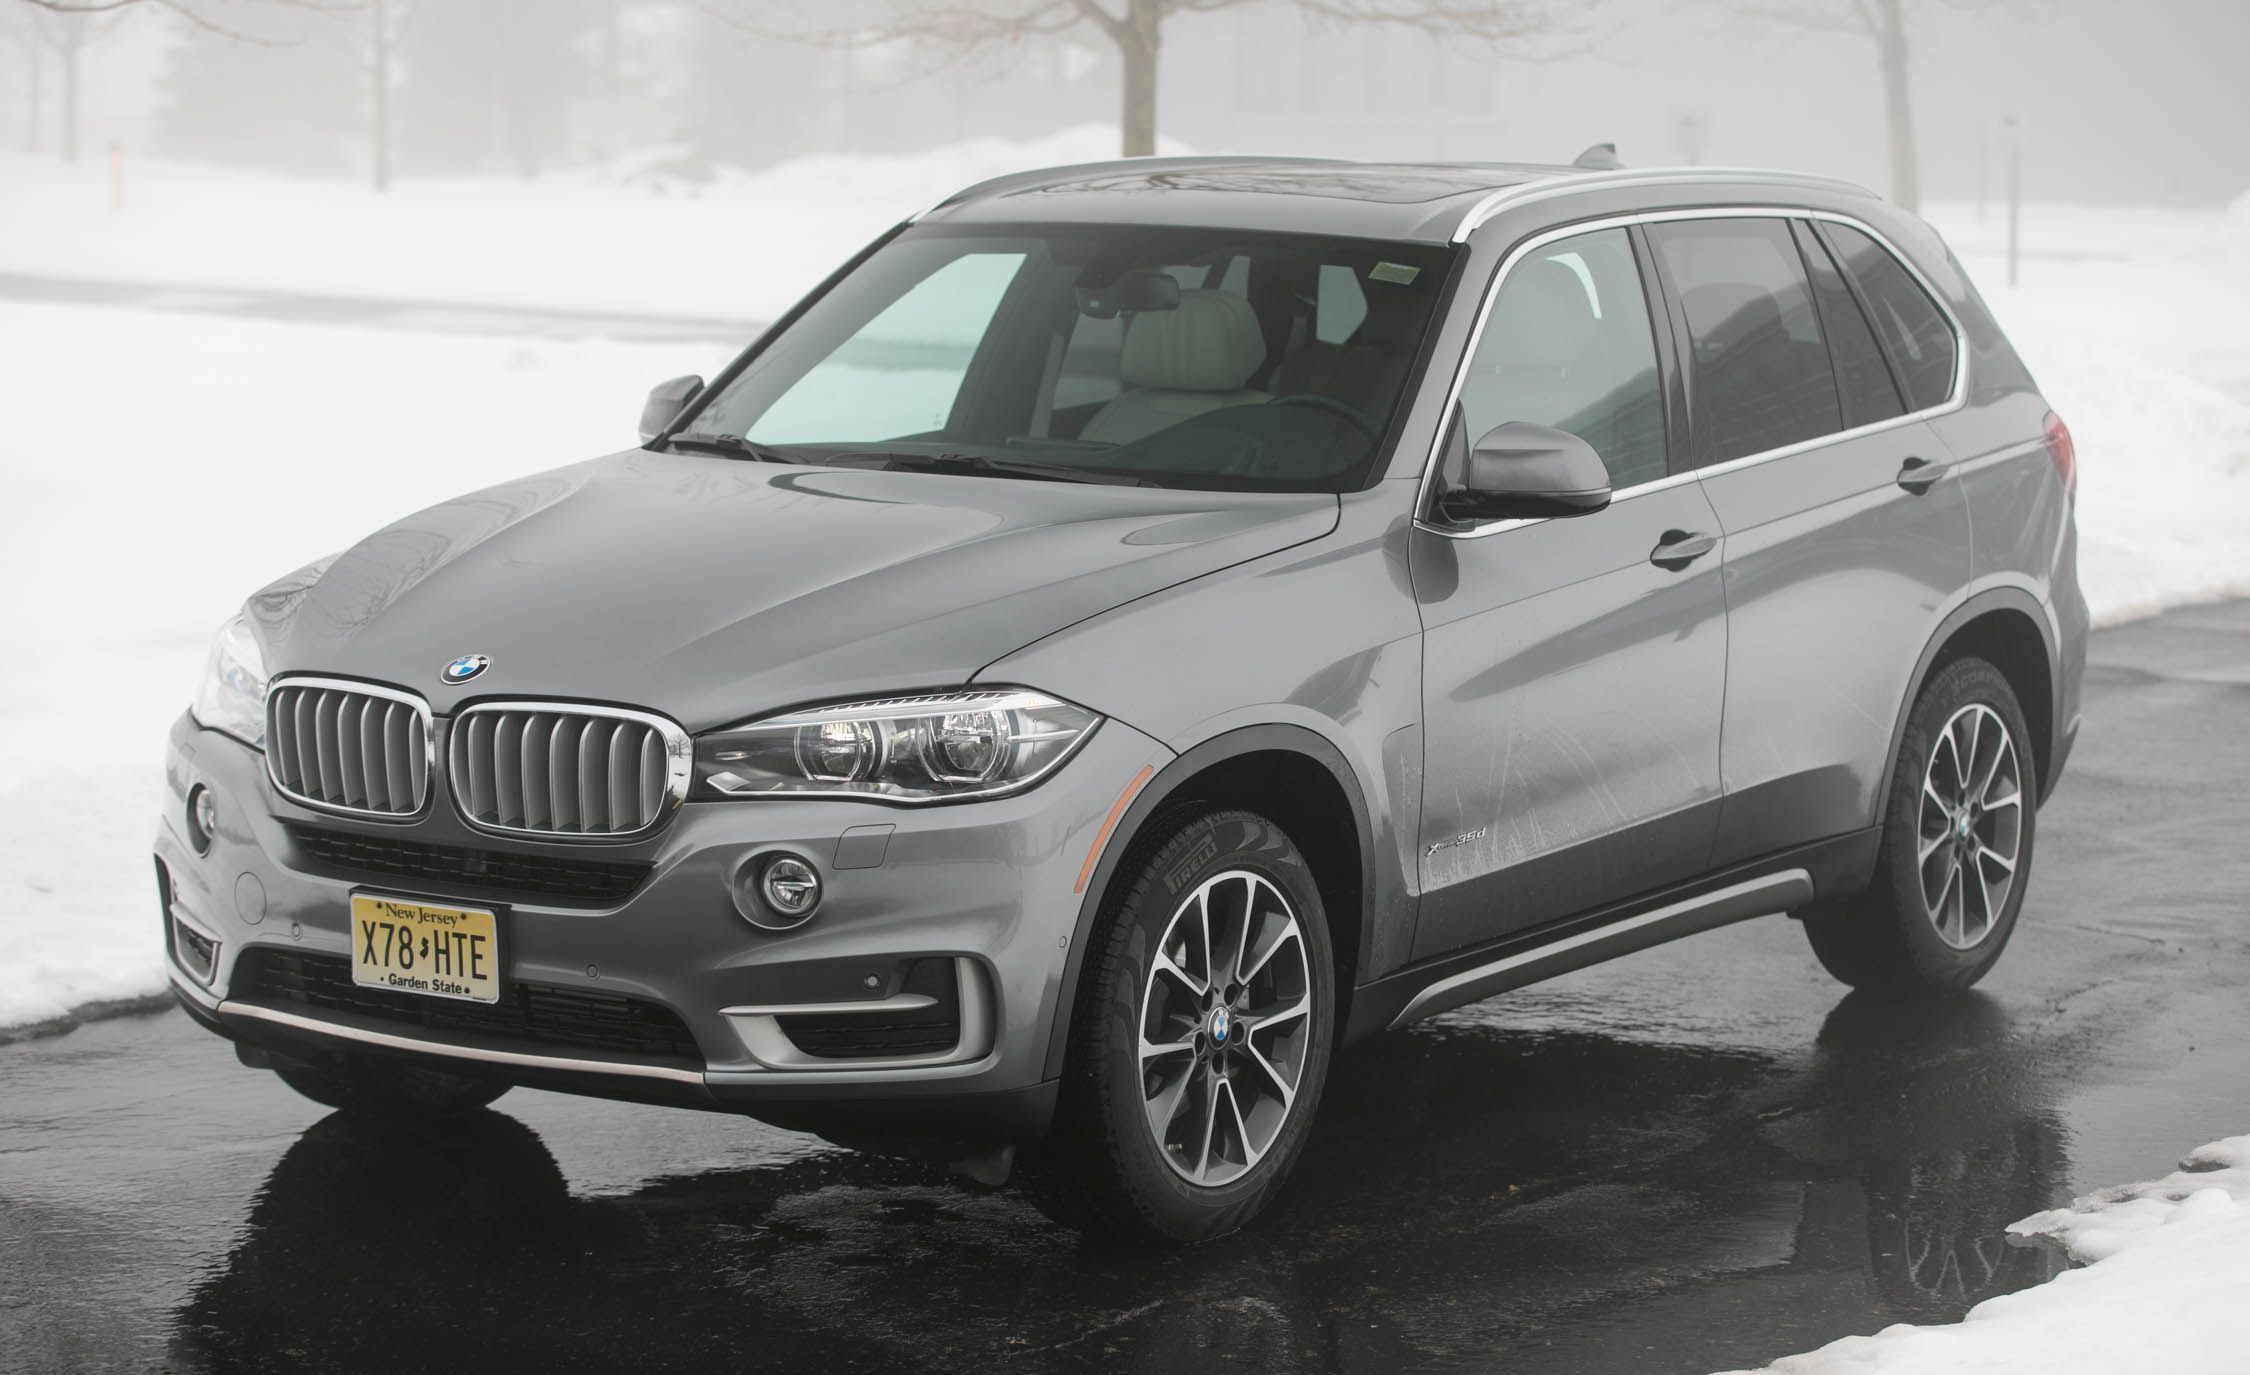 2018 bmw x5 exterior design and dimensions review car and driver. Black Bedroom Furniture Sets. Home Design Ideas